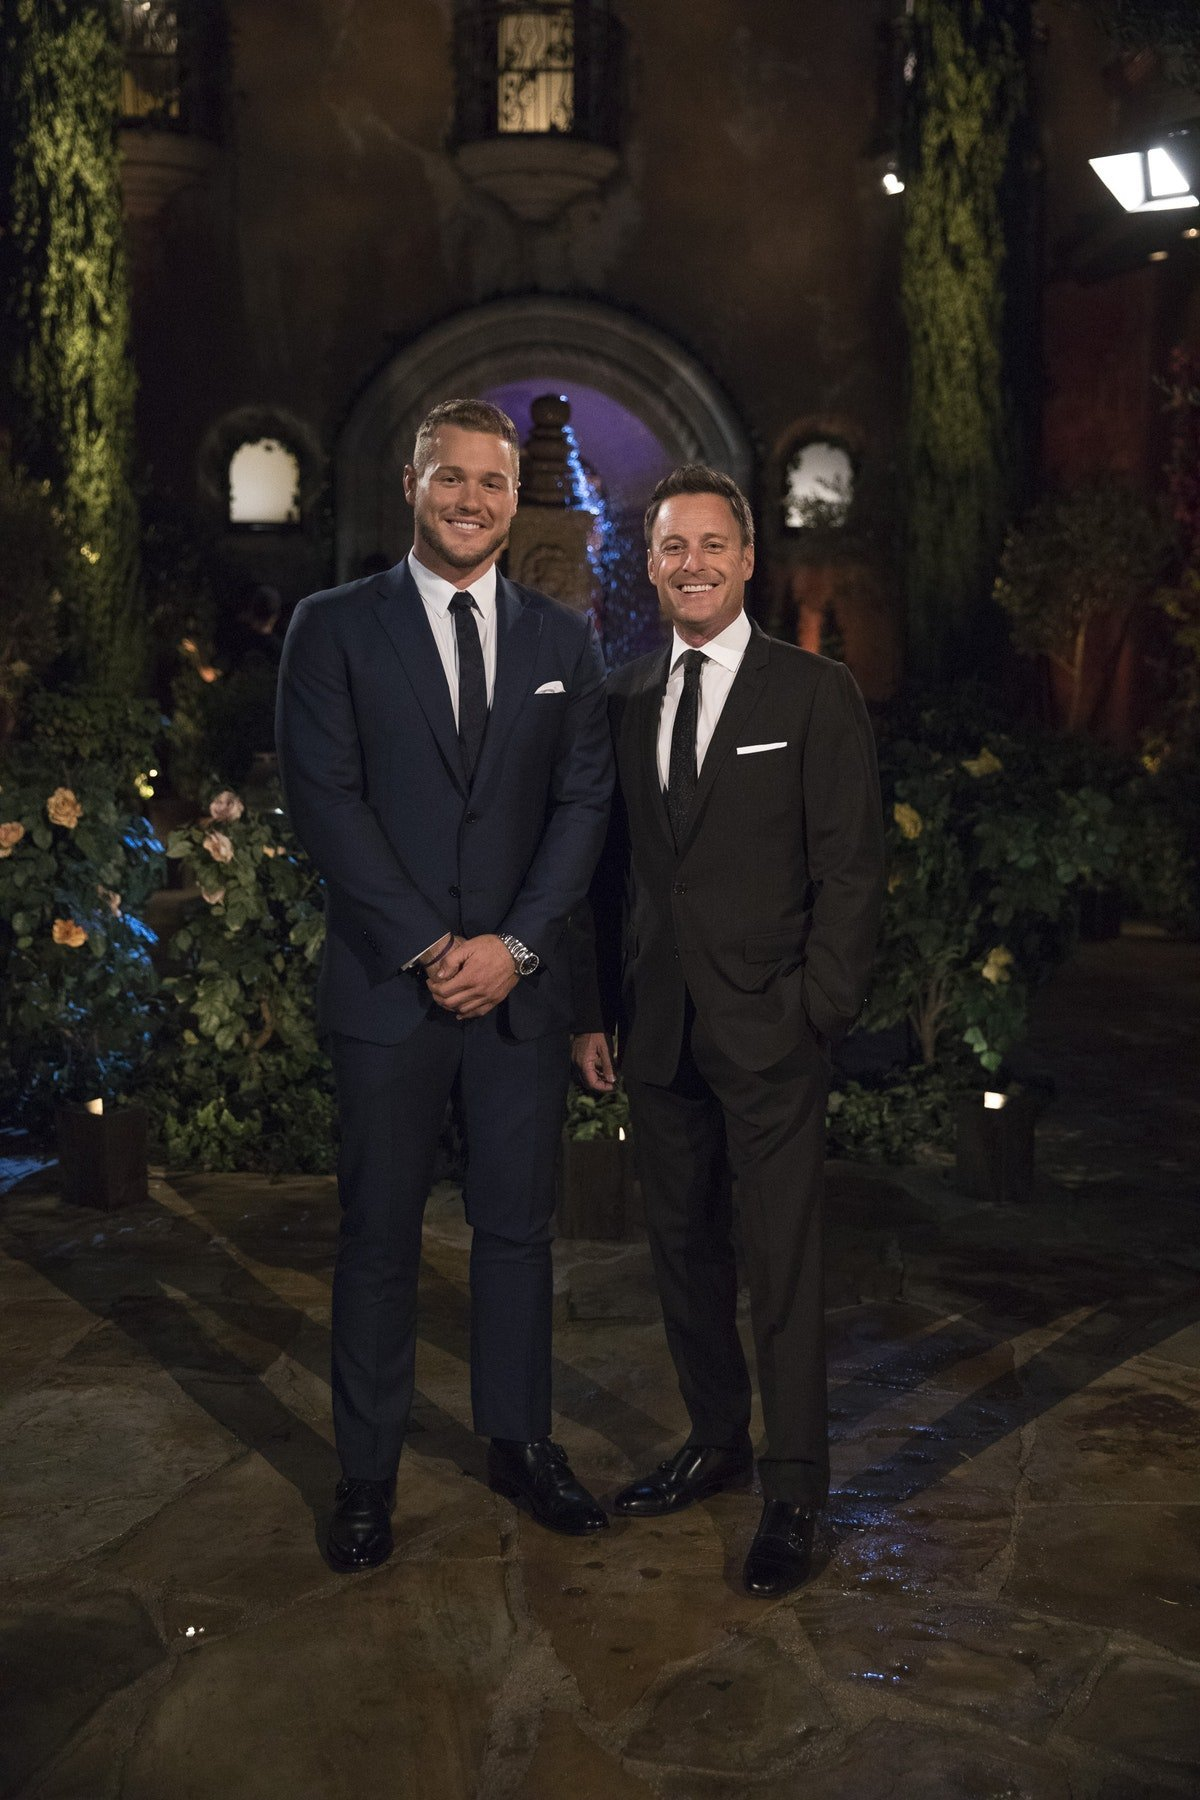 Colton Is Channeling The '40 Year-Old Virgin' In The New 'Bachelor' Promo & It's A Choice